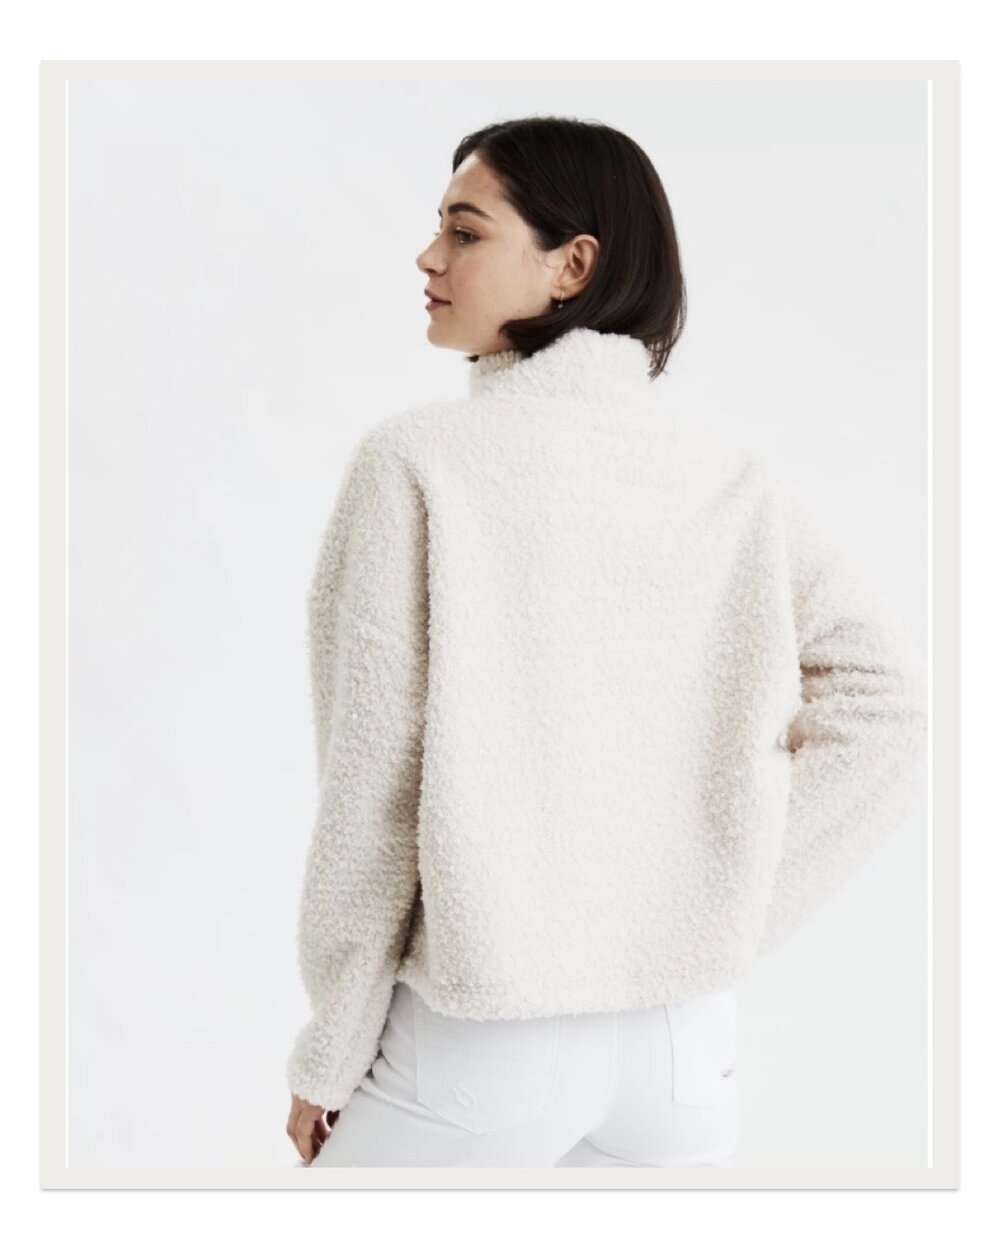 This boxy sherpa mock neck pullover is the epitome of cozy chic. The silhouette is so stylish and modern and I've found this piece to be acceptable for everything from sleeping to drinks out with friends.